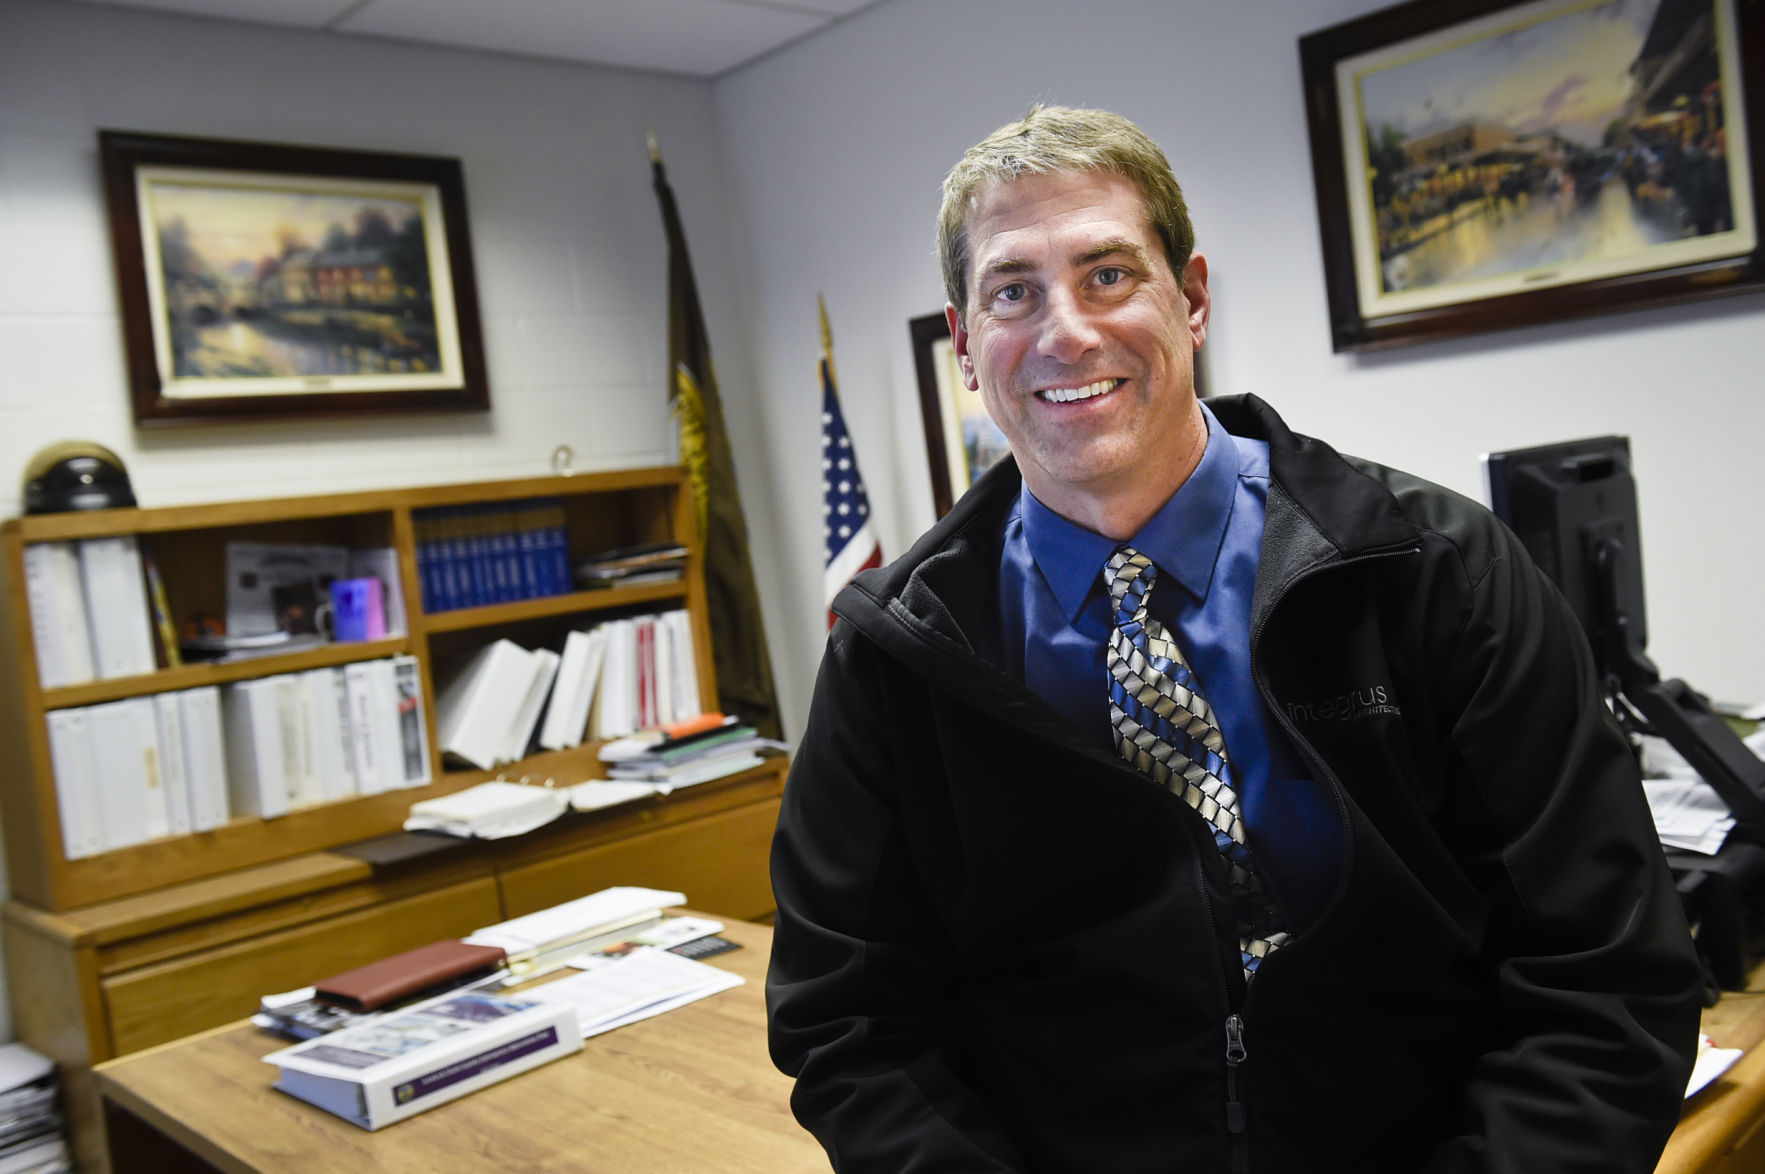 Undersheriff to retire after 20 year law enforcement